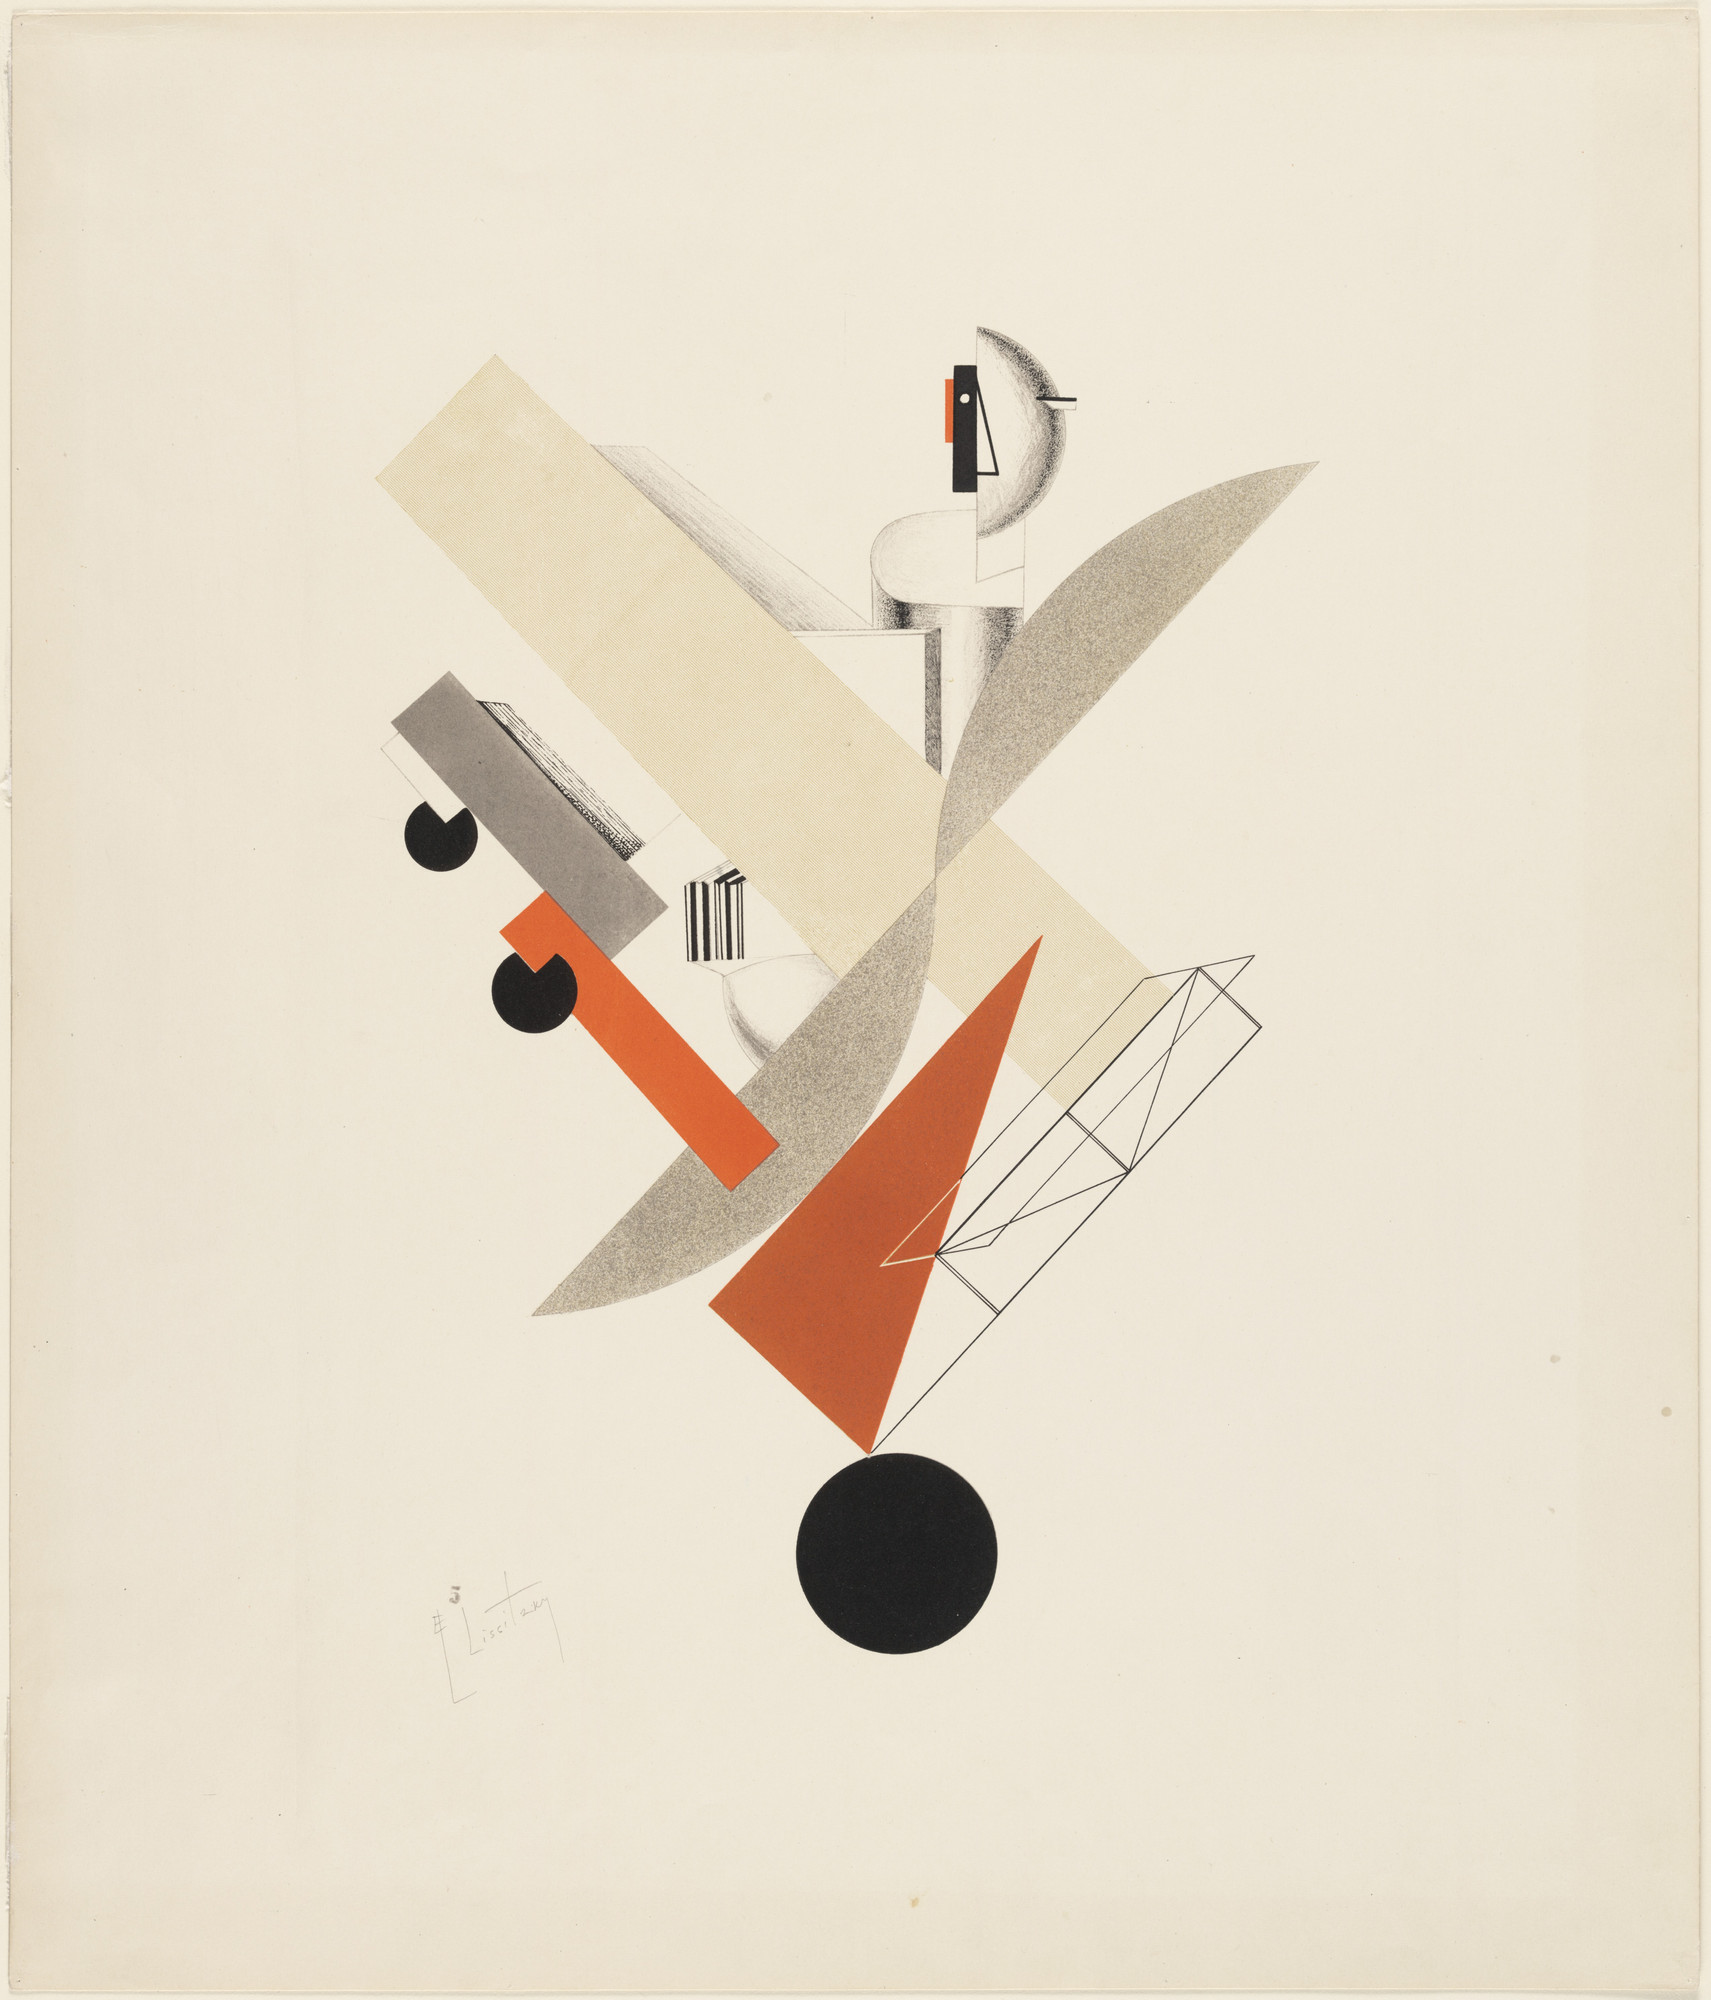 "El Lissitzky. The Globetrotter from Figurines: The Three-Dimensional Design of the Electro-Mechanical Show ""Victory over the Sun"" (Figurinen, die plastische Gestaltung der elektro-mechanischen Schau ""Sieg über die Sonne""). 1920–21, published 1923"